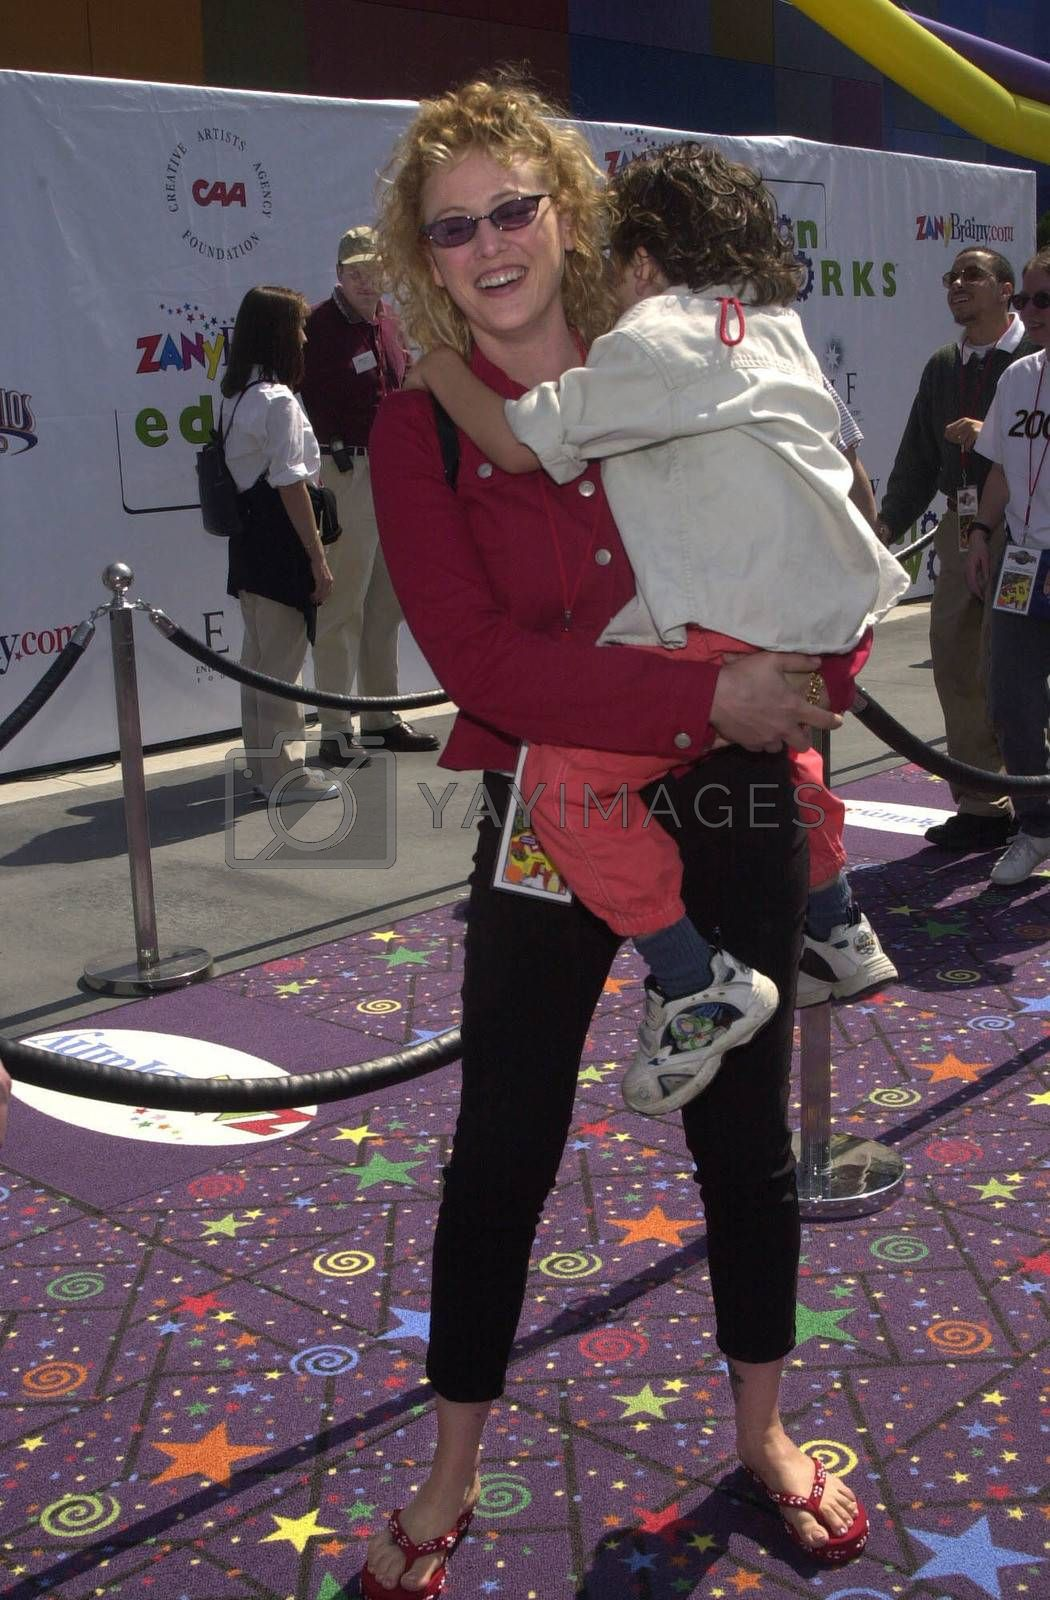 Virginia Madsen and daughter at the Education Works benefit to promote after-school activities, Universal Studios Hollywood, 03-25-00